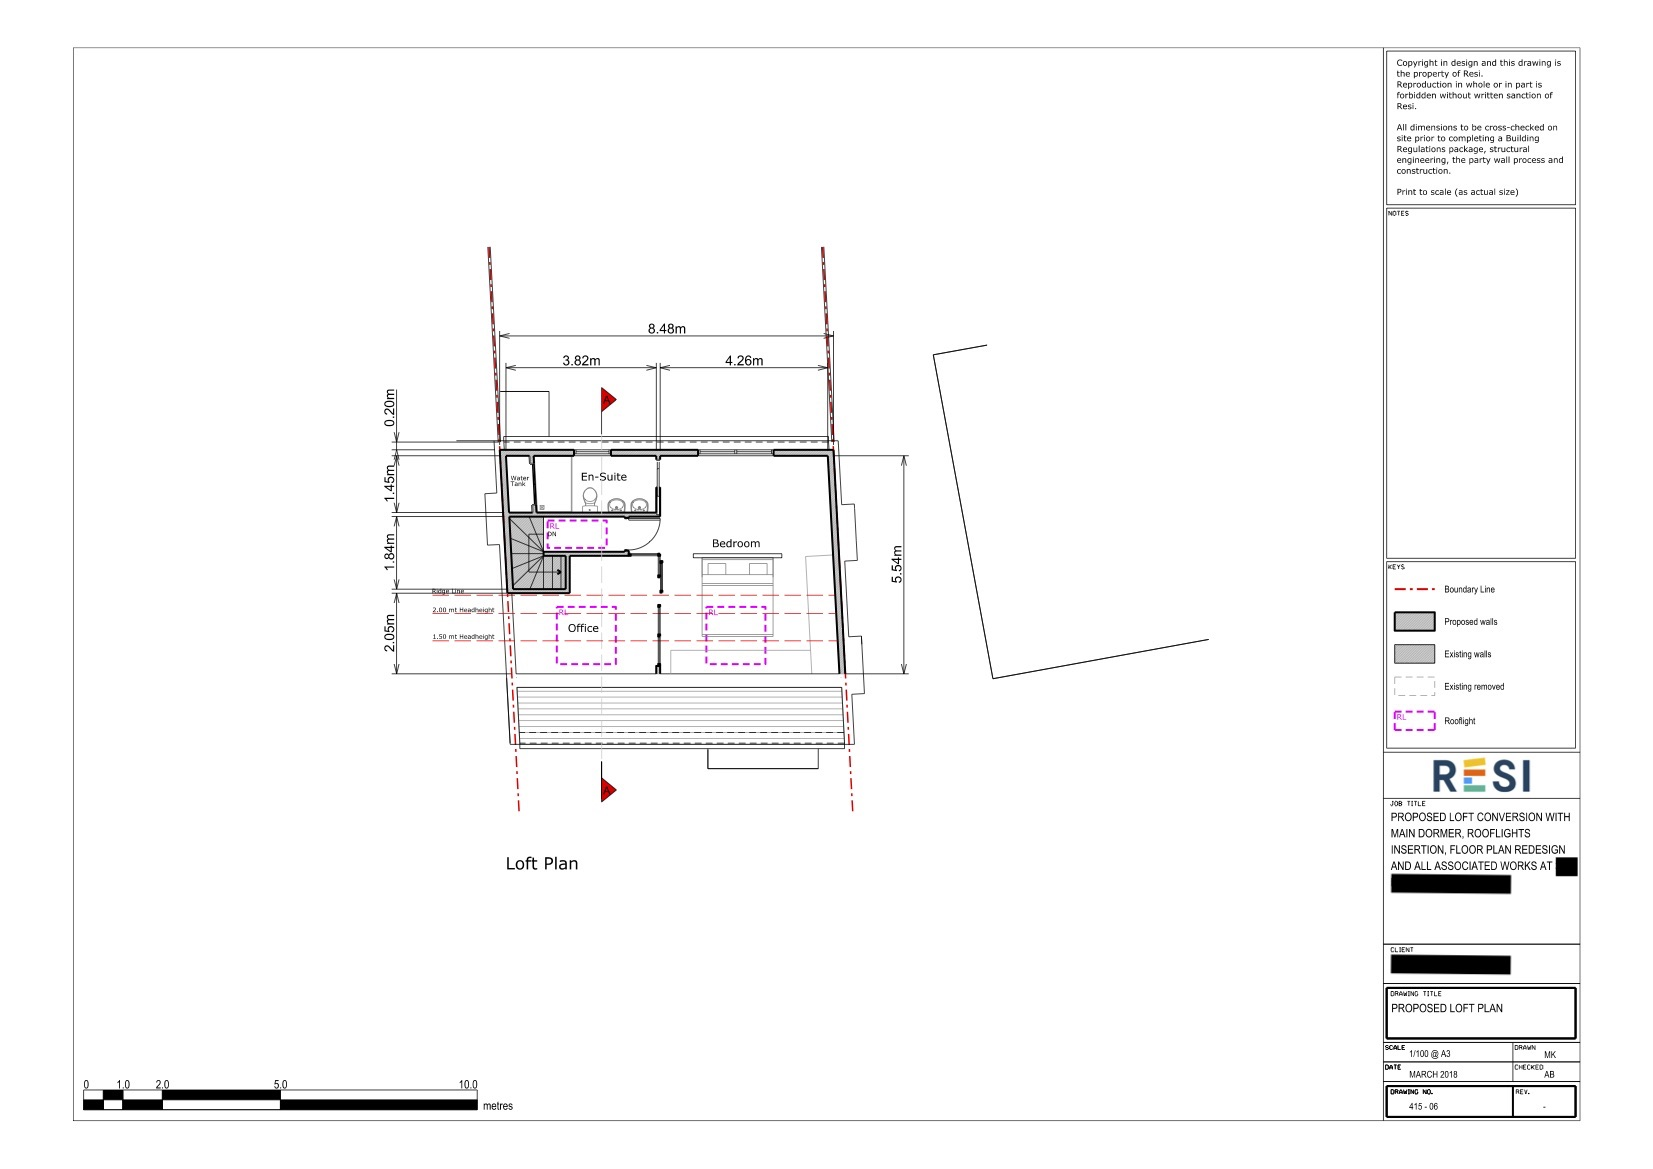 Architectural drawings   loft plan